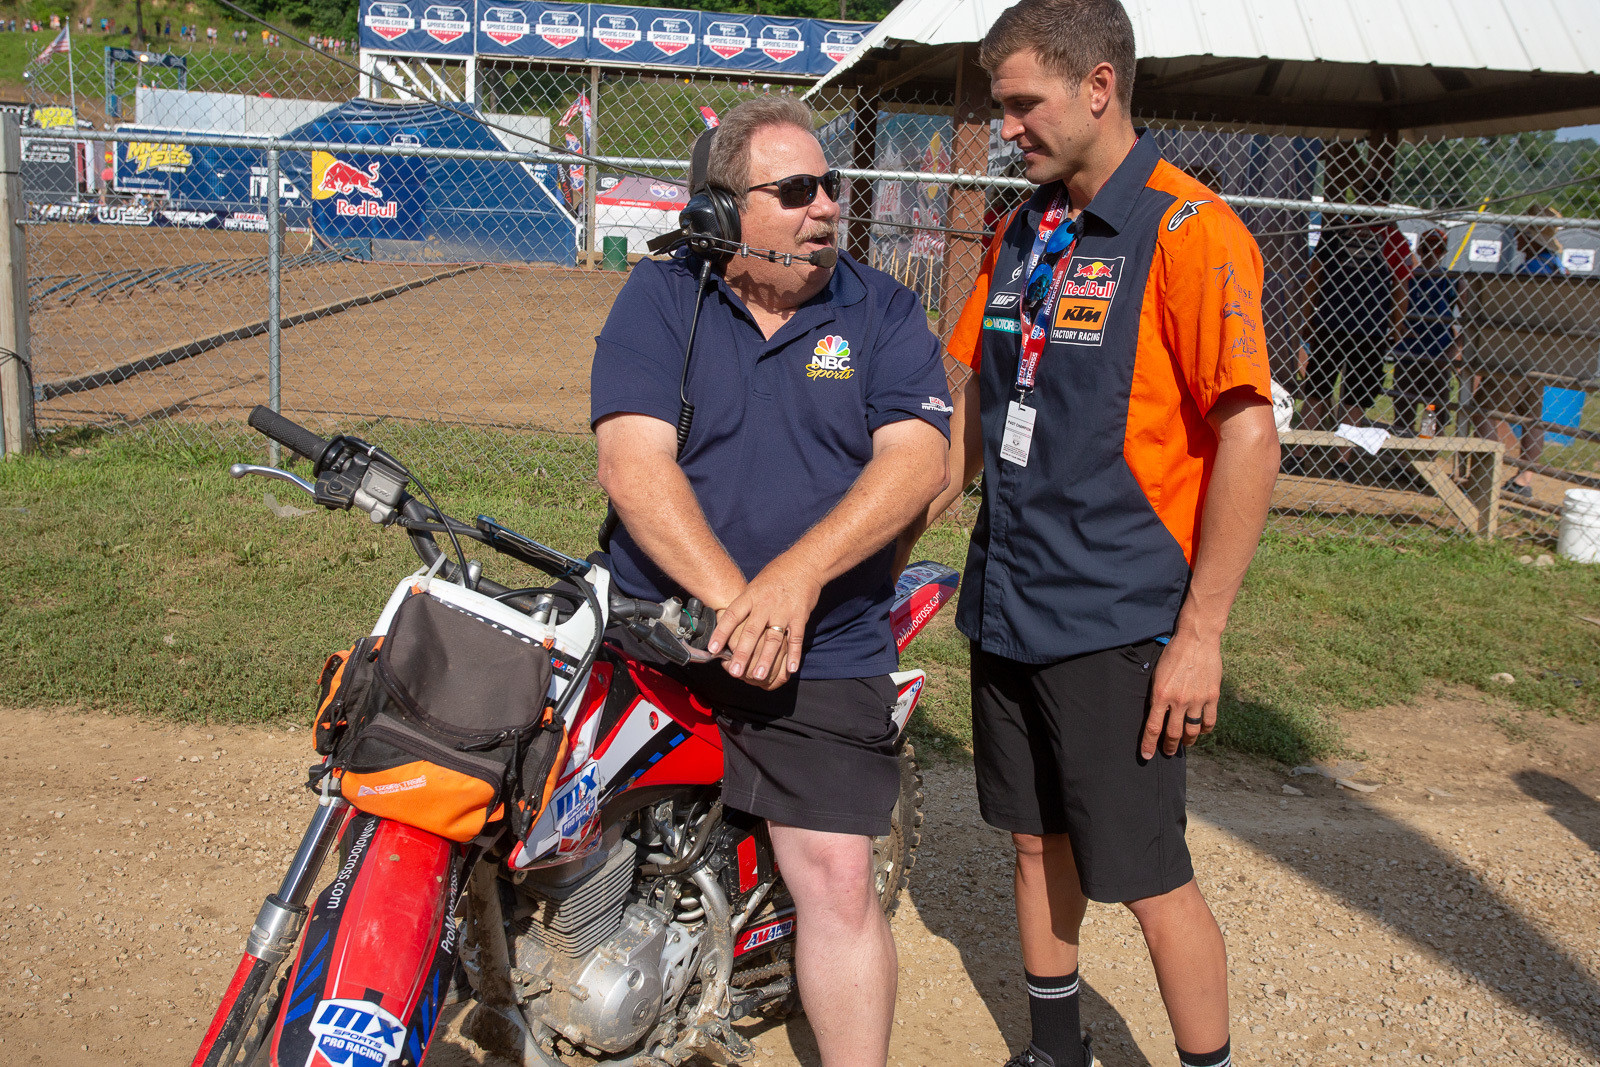 Ah, Spring Creek memories. It doesn't seem that long ago that we saw Toolie (Tim McAdams, left), wheeling Ryan Dungey's bike to the line for his first pro race. Ryan was the Grand Marshal for the weekend's event.